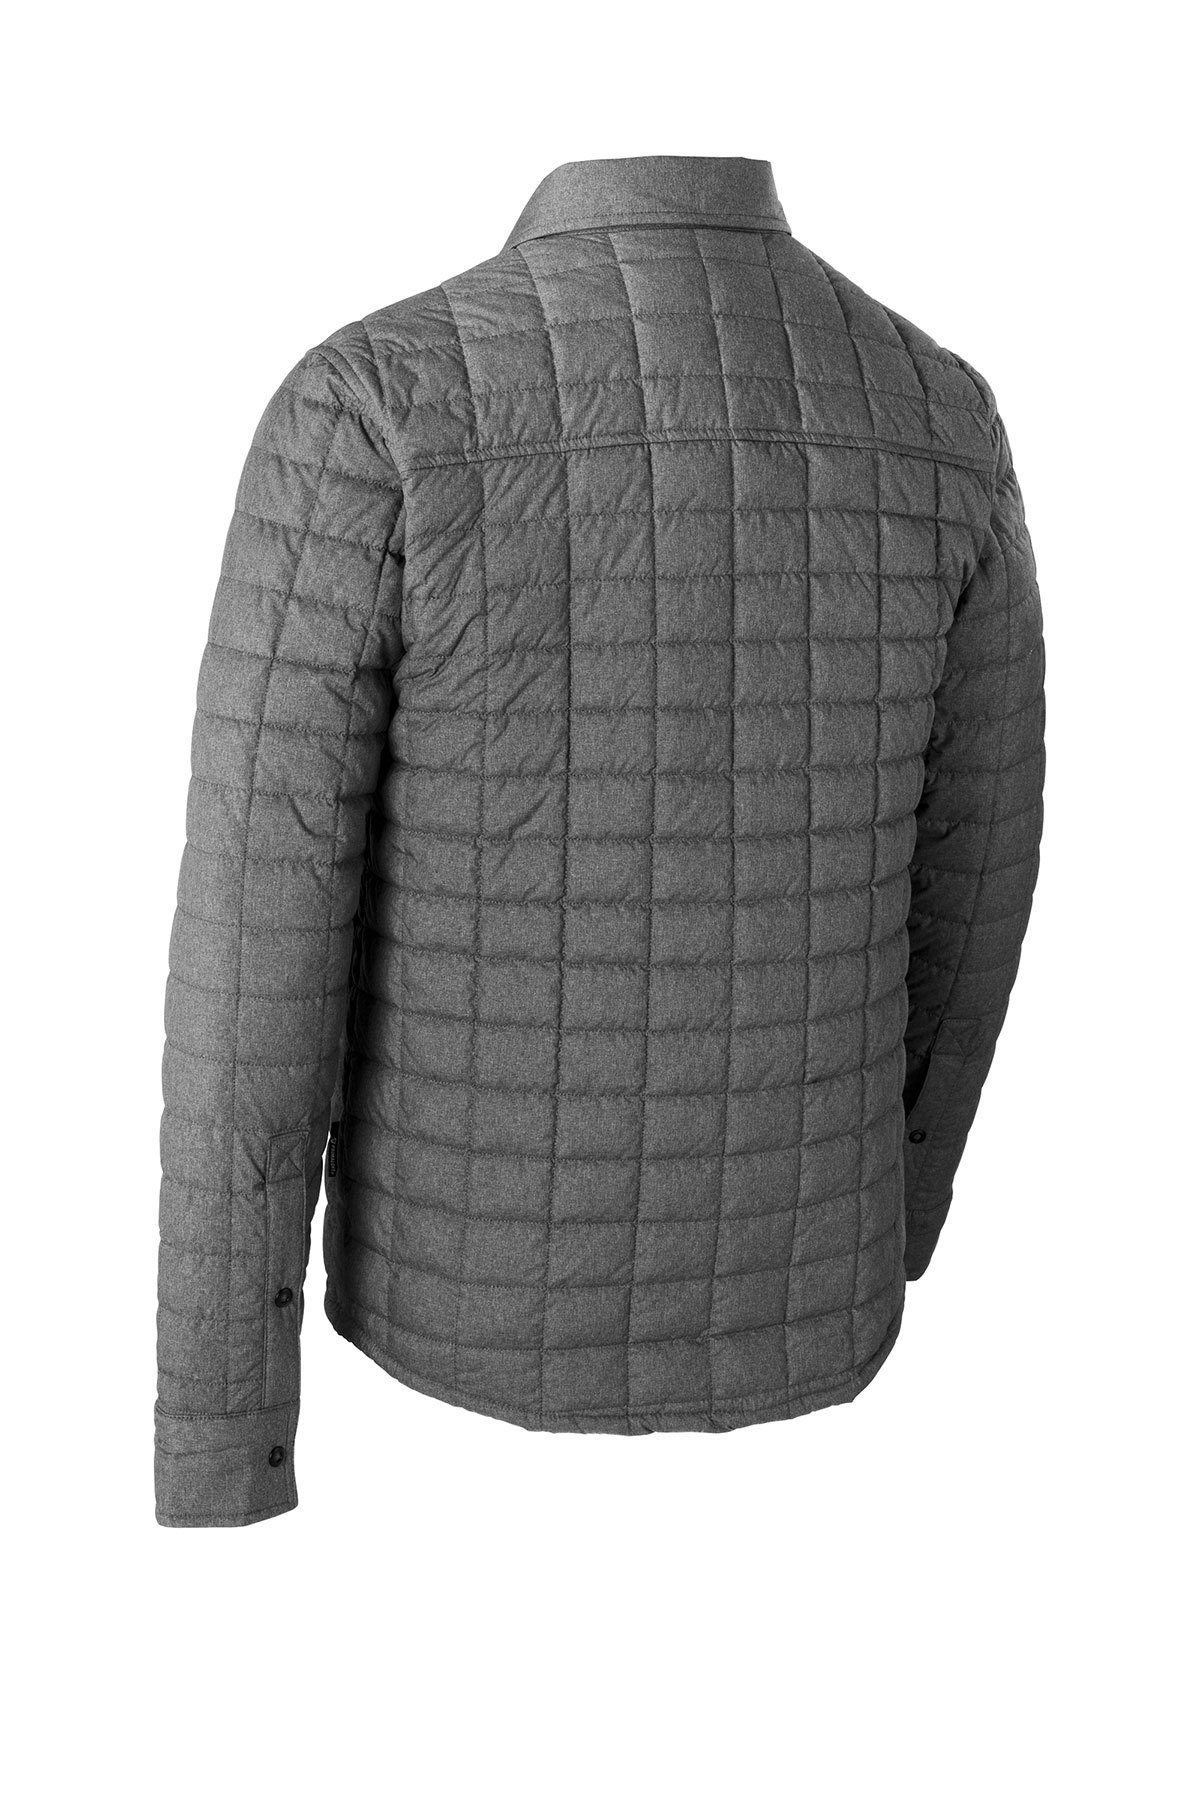 The North Face Thermoball Eco Shirt Jacket Insulated